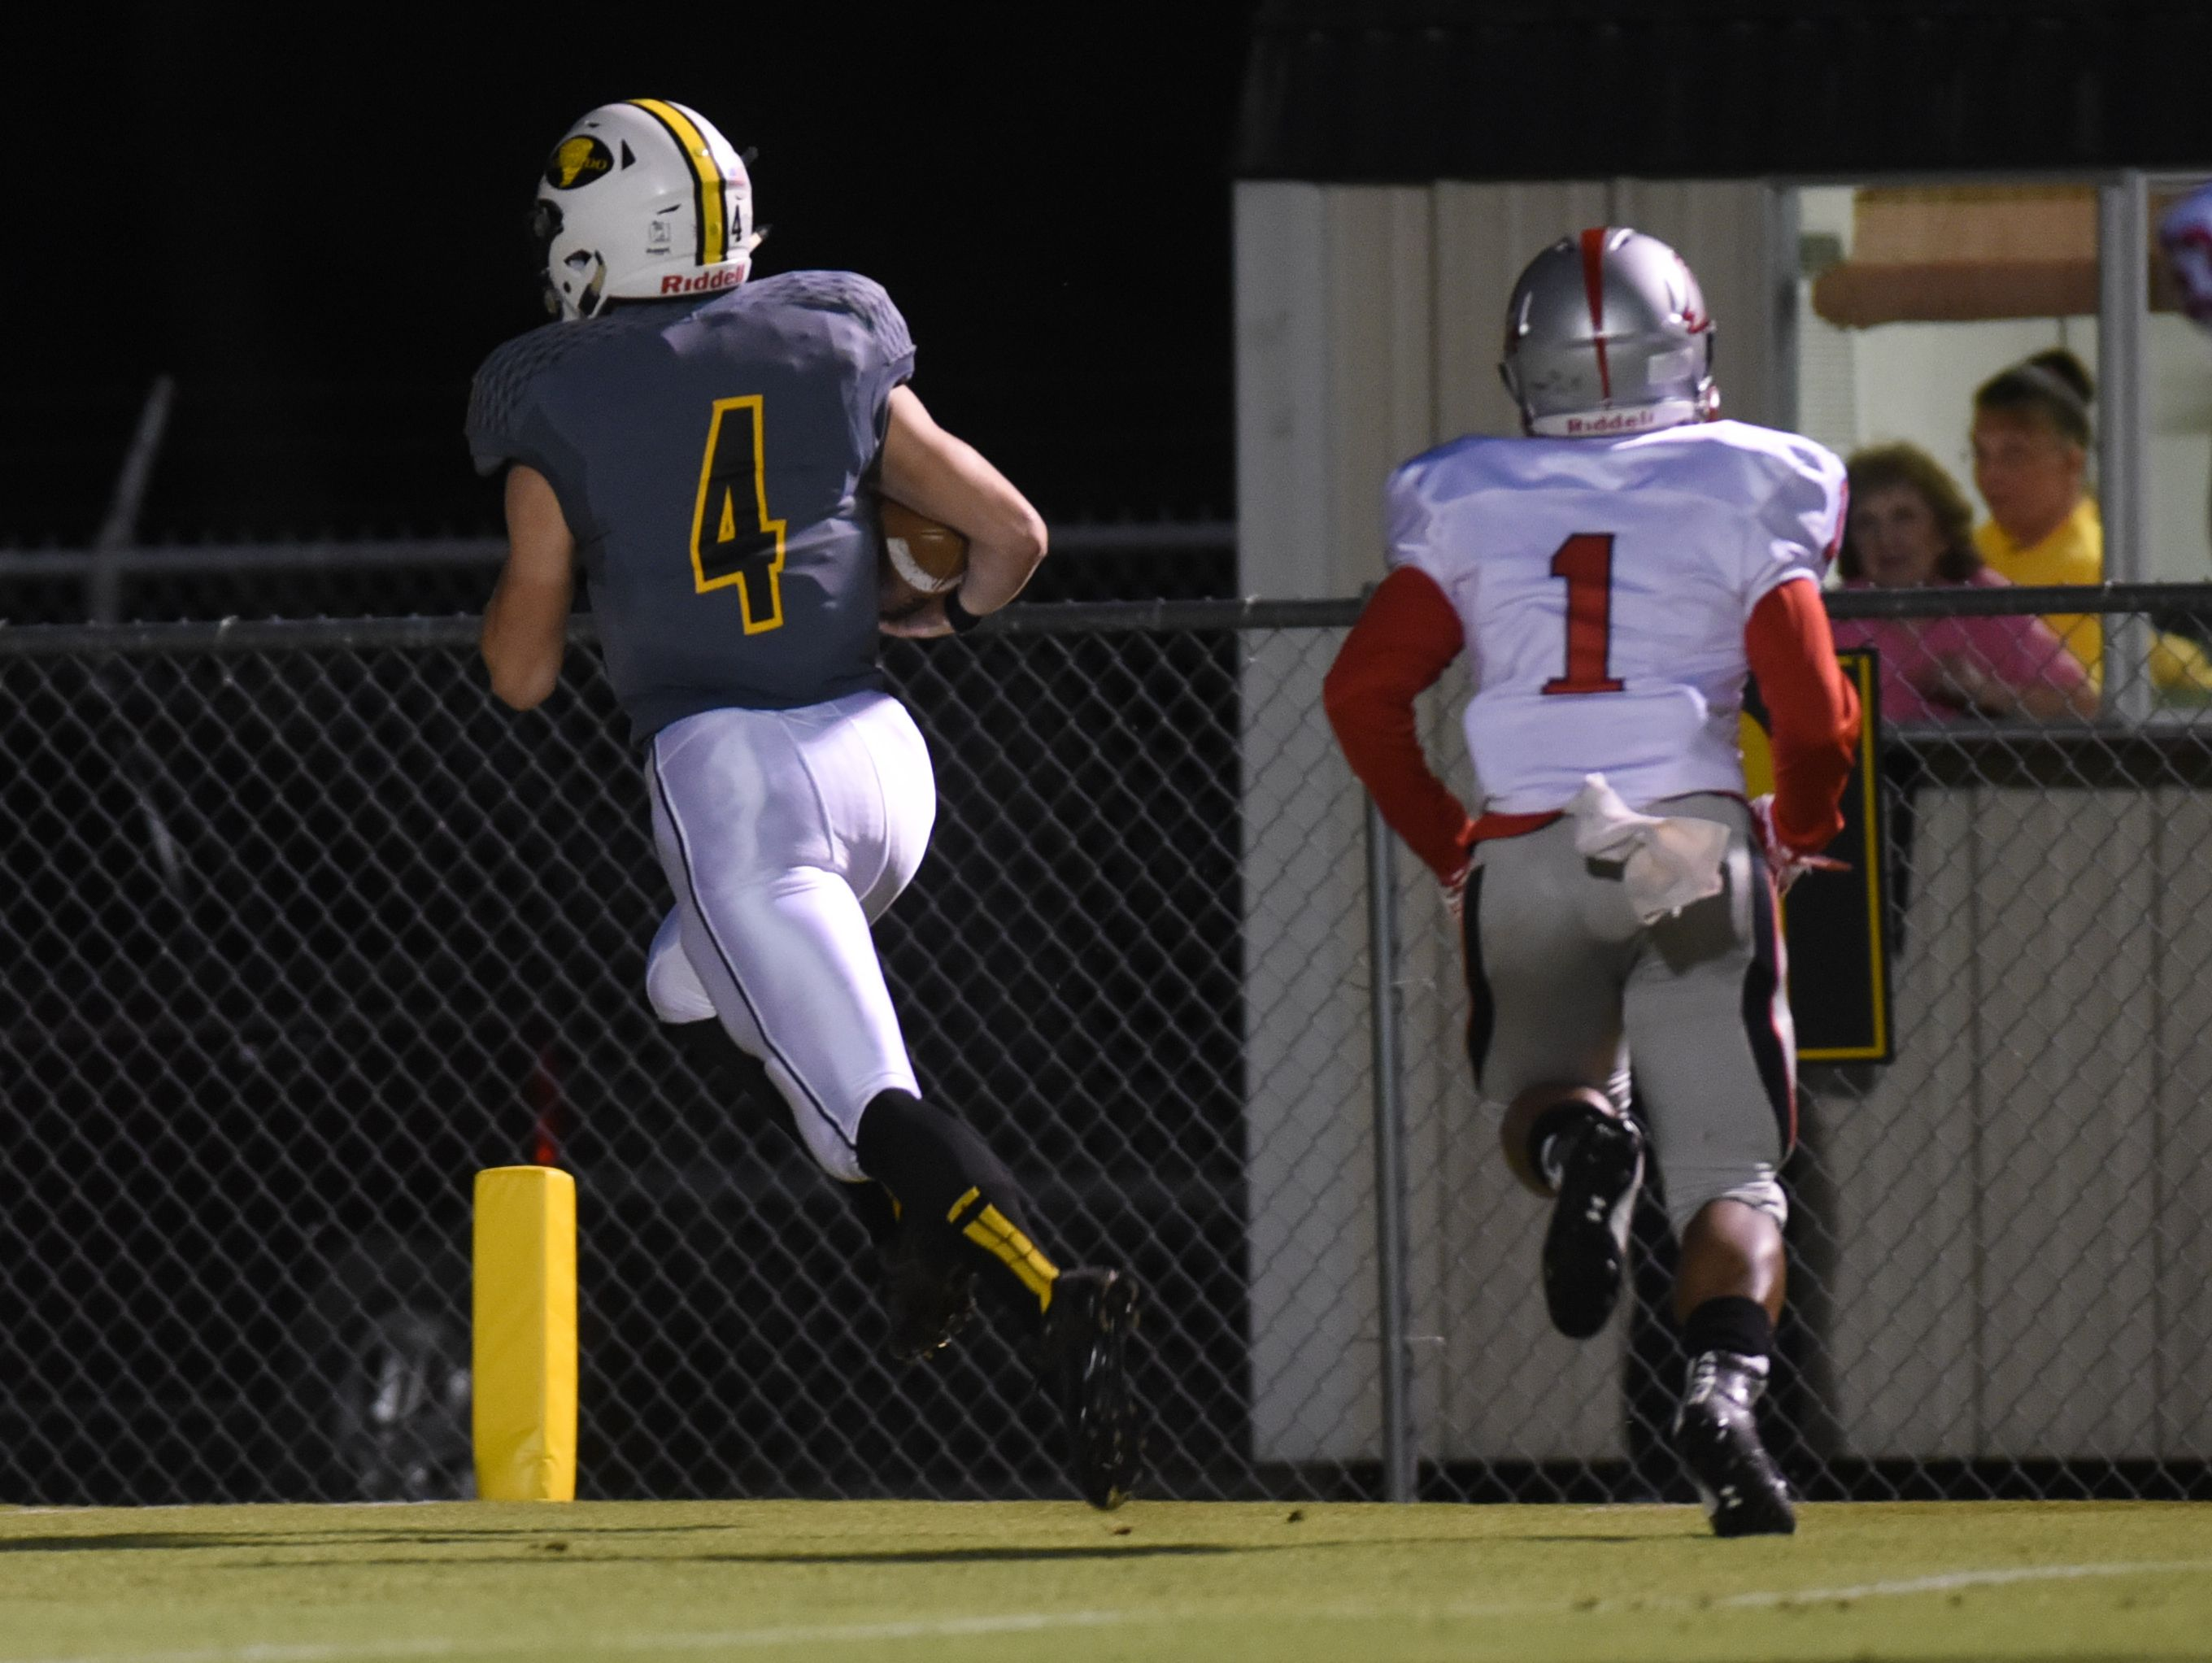 The Haynesville Golden Tornado take on Plain Dealing Friday night in district play.